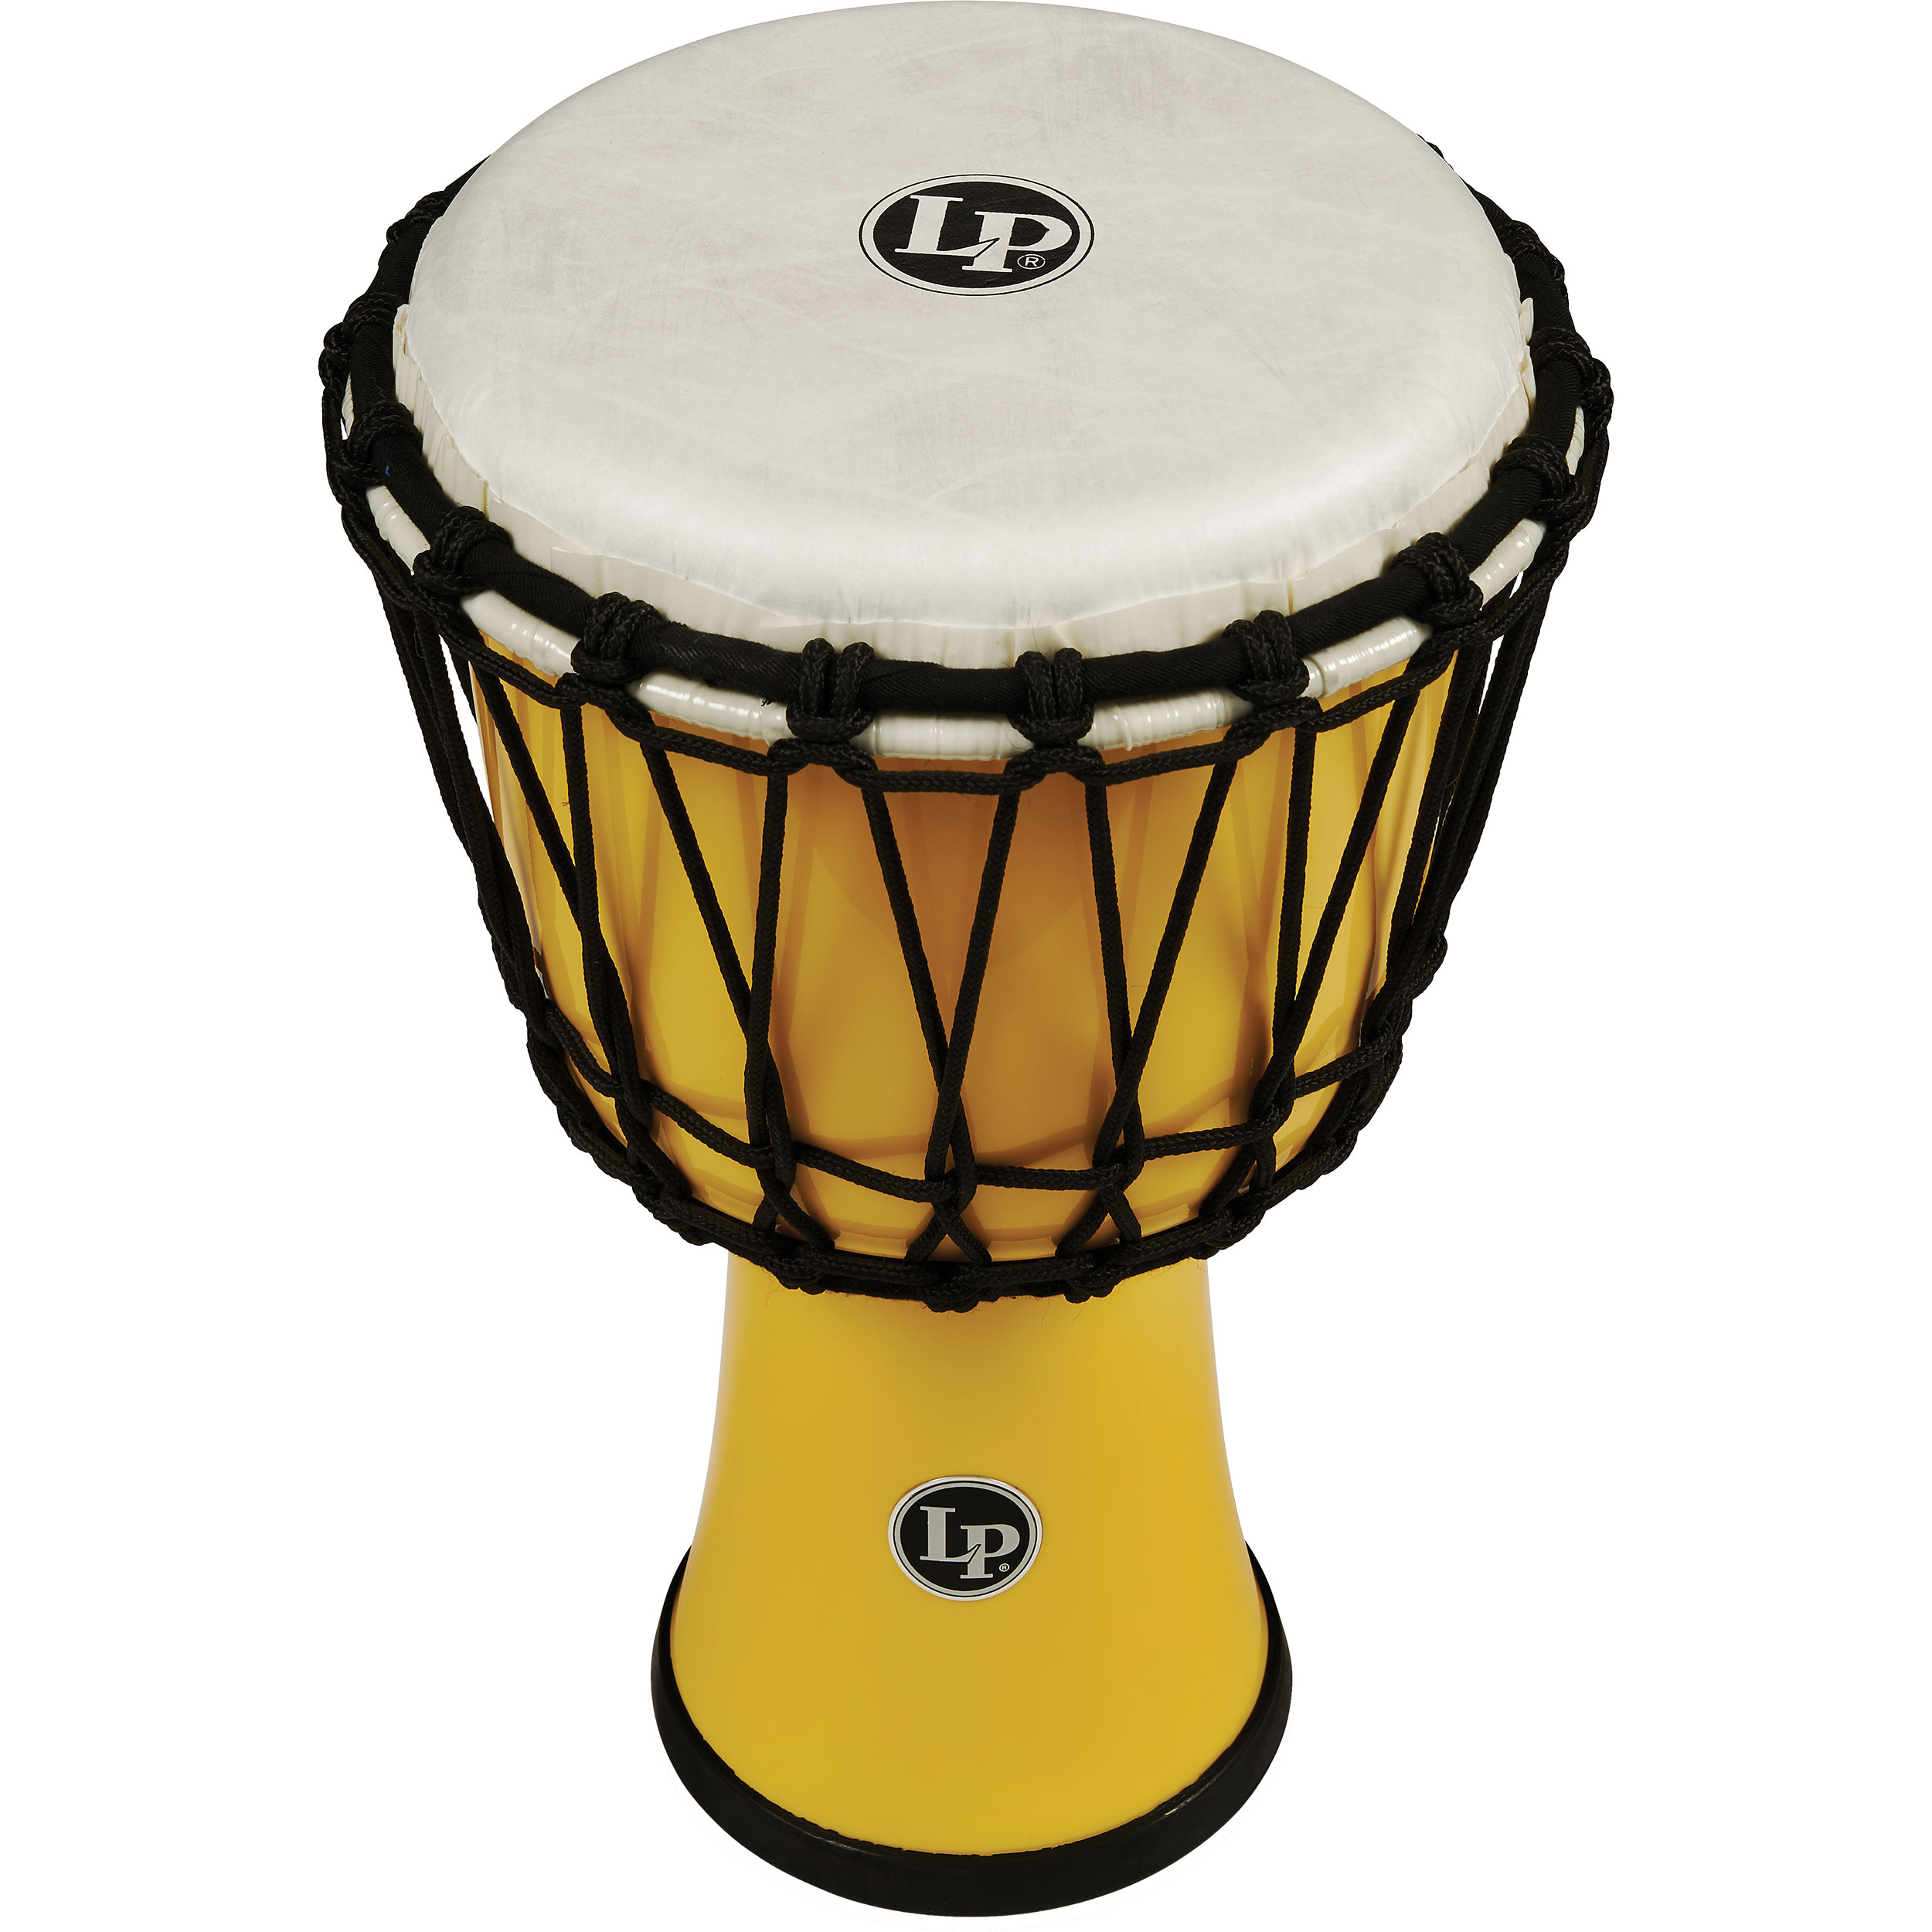 "LP 7"" Rope Tuned Circle Djembe in Yellow"